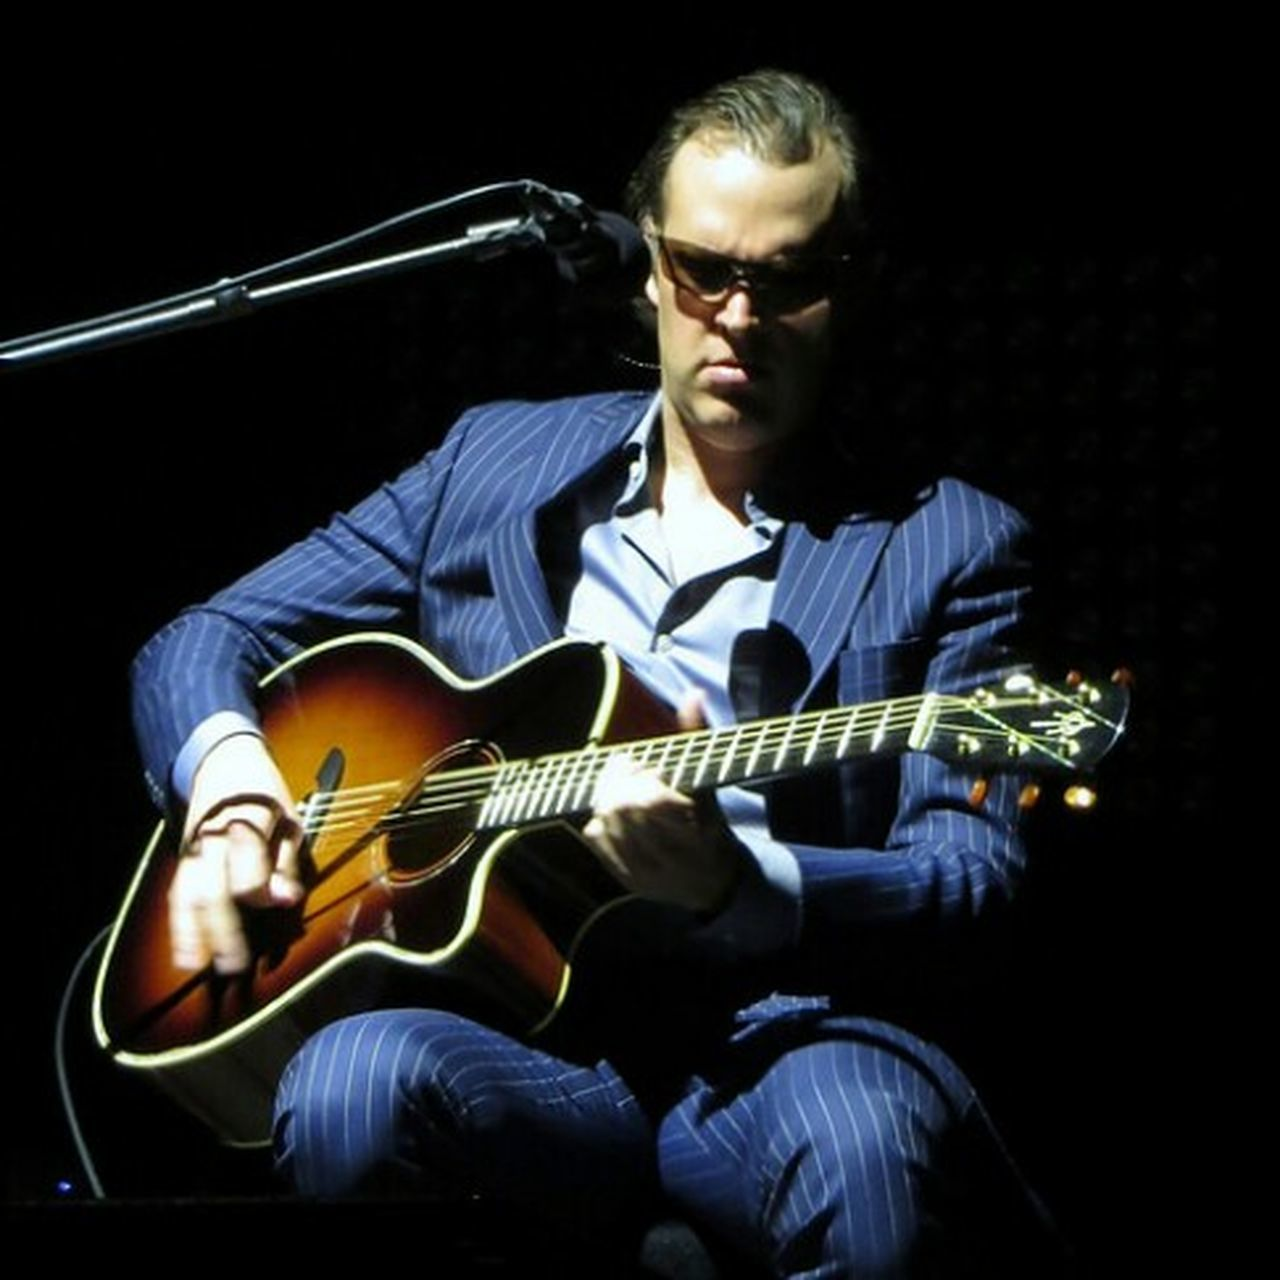 music, guitar, one man only, sunglasses, only men, sitting, musical instrument, plucking an instrument, black background, one person, adults only, young adult, adult, one young man only, musician, playing, casual clothing, people, men, studio shot, night, performance, eyeglasses, illuminated, indoors